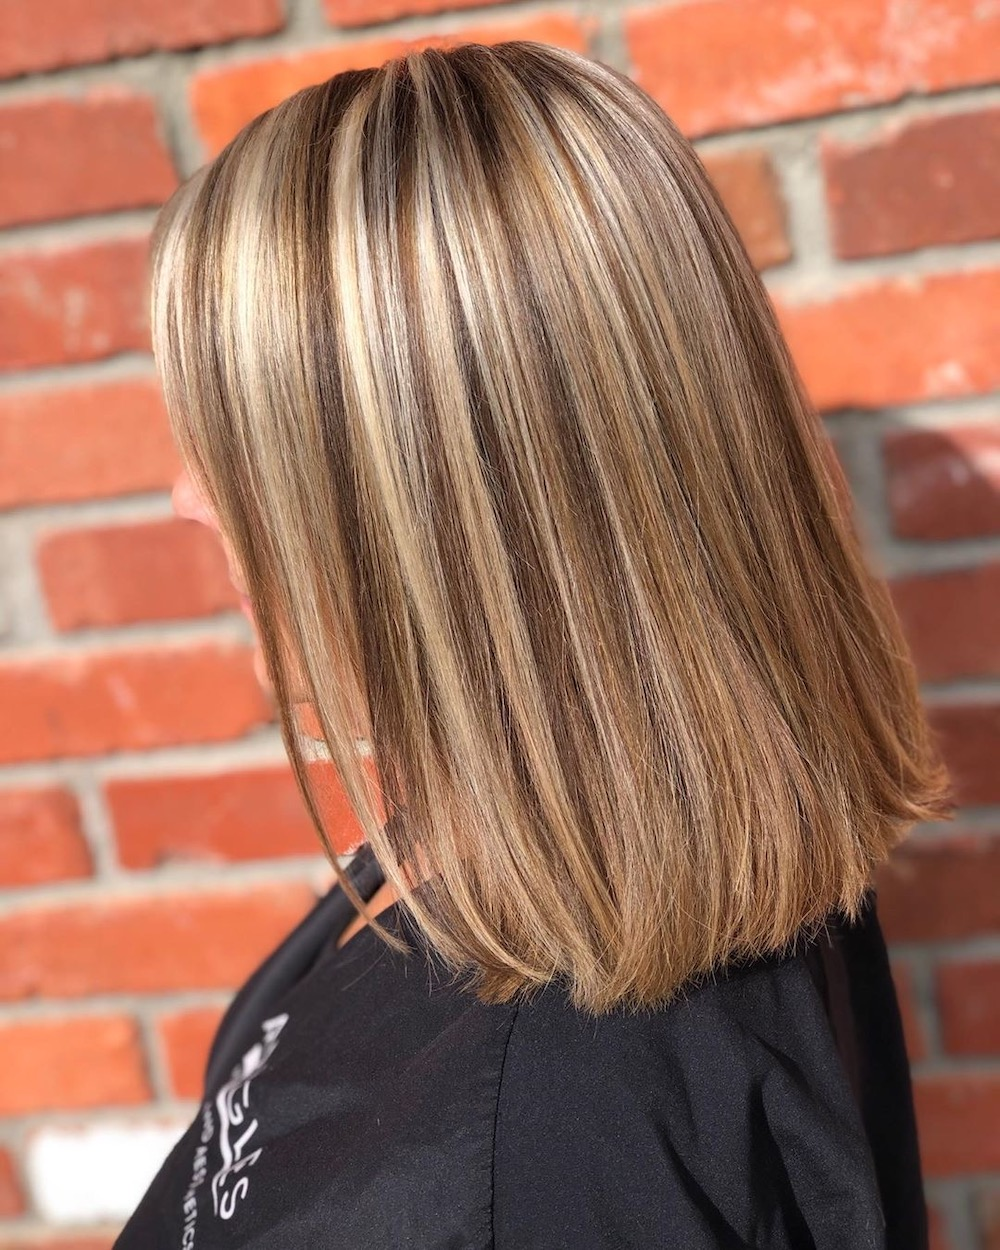 We Re Officially Obsessed With The 90s Chunky Highlights Trend That S All Over Instagram Brunette Hair With Highlights Chunky Blonde Highlights Chunky Highlights